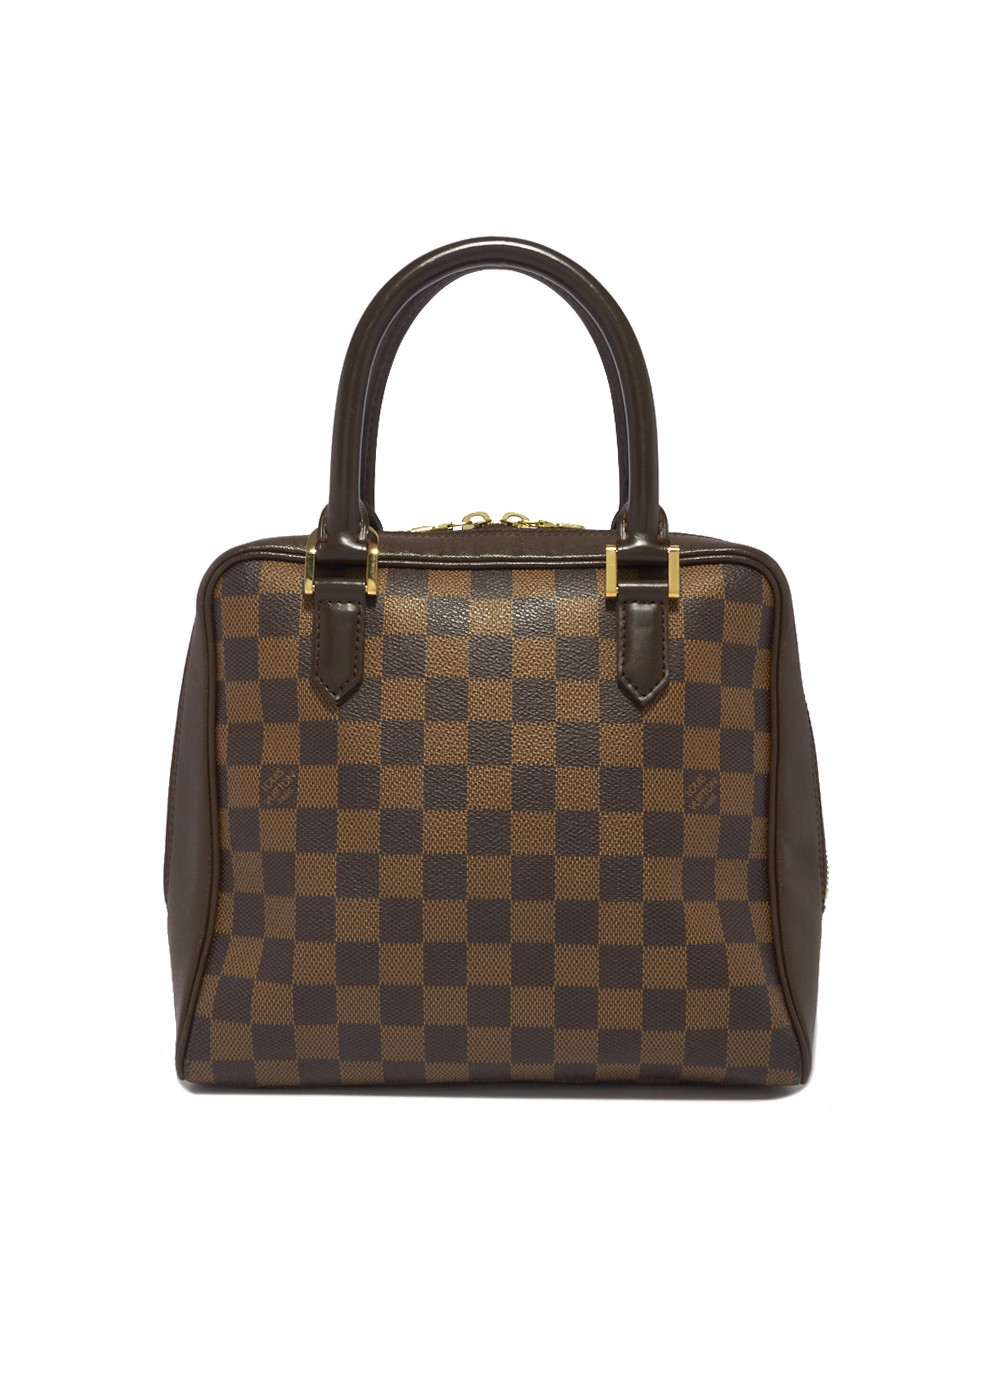 Louis Vuitton ブレラPM ダミエ|OTHER|ハンドバッグ|【Price Down!!】TIMELESS TOKYO - Vintage Select -